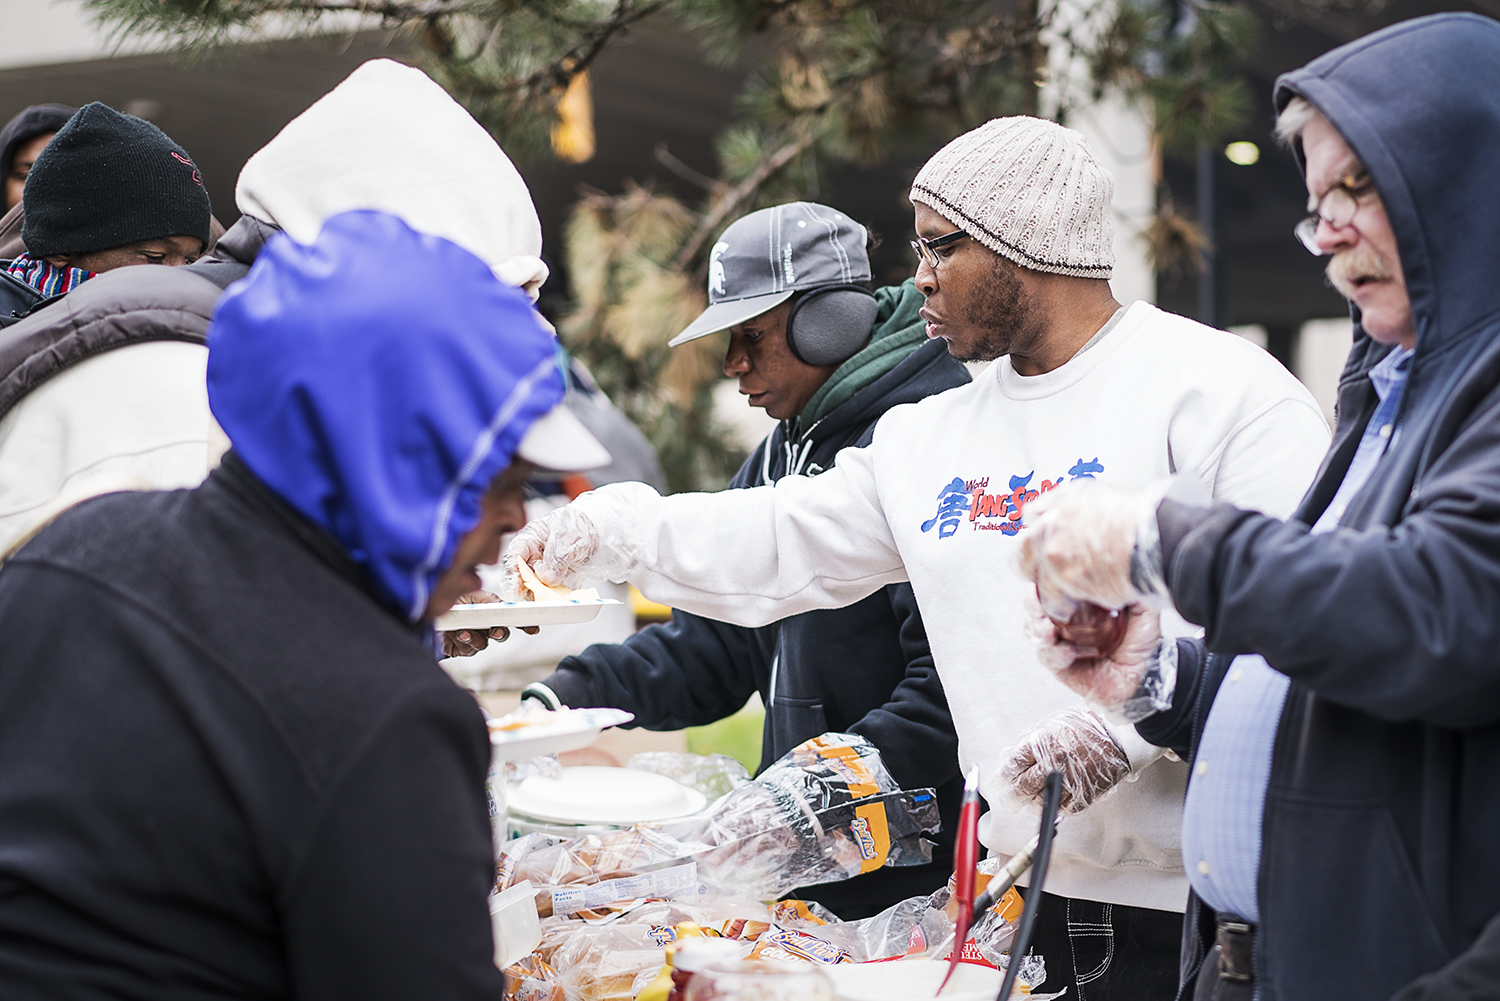 "Flint, MI - Saturday, October 28, 2017: Burton resident Paul C. Owens, 31, (center) serves up some food at the Flint Community Cookout at the Riverbank Park. Owens, a volunteer for 4 years, uses the cookouts as an opportunity to ""do the Lord's work"" and to meet people, overcoming his self-proclaimed introverted personality.